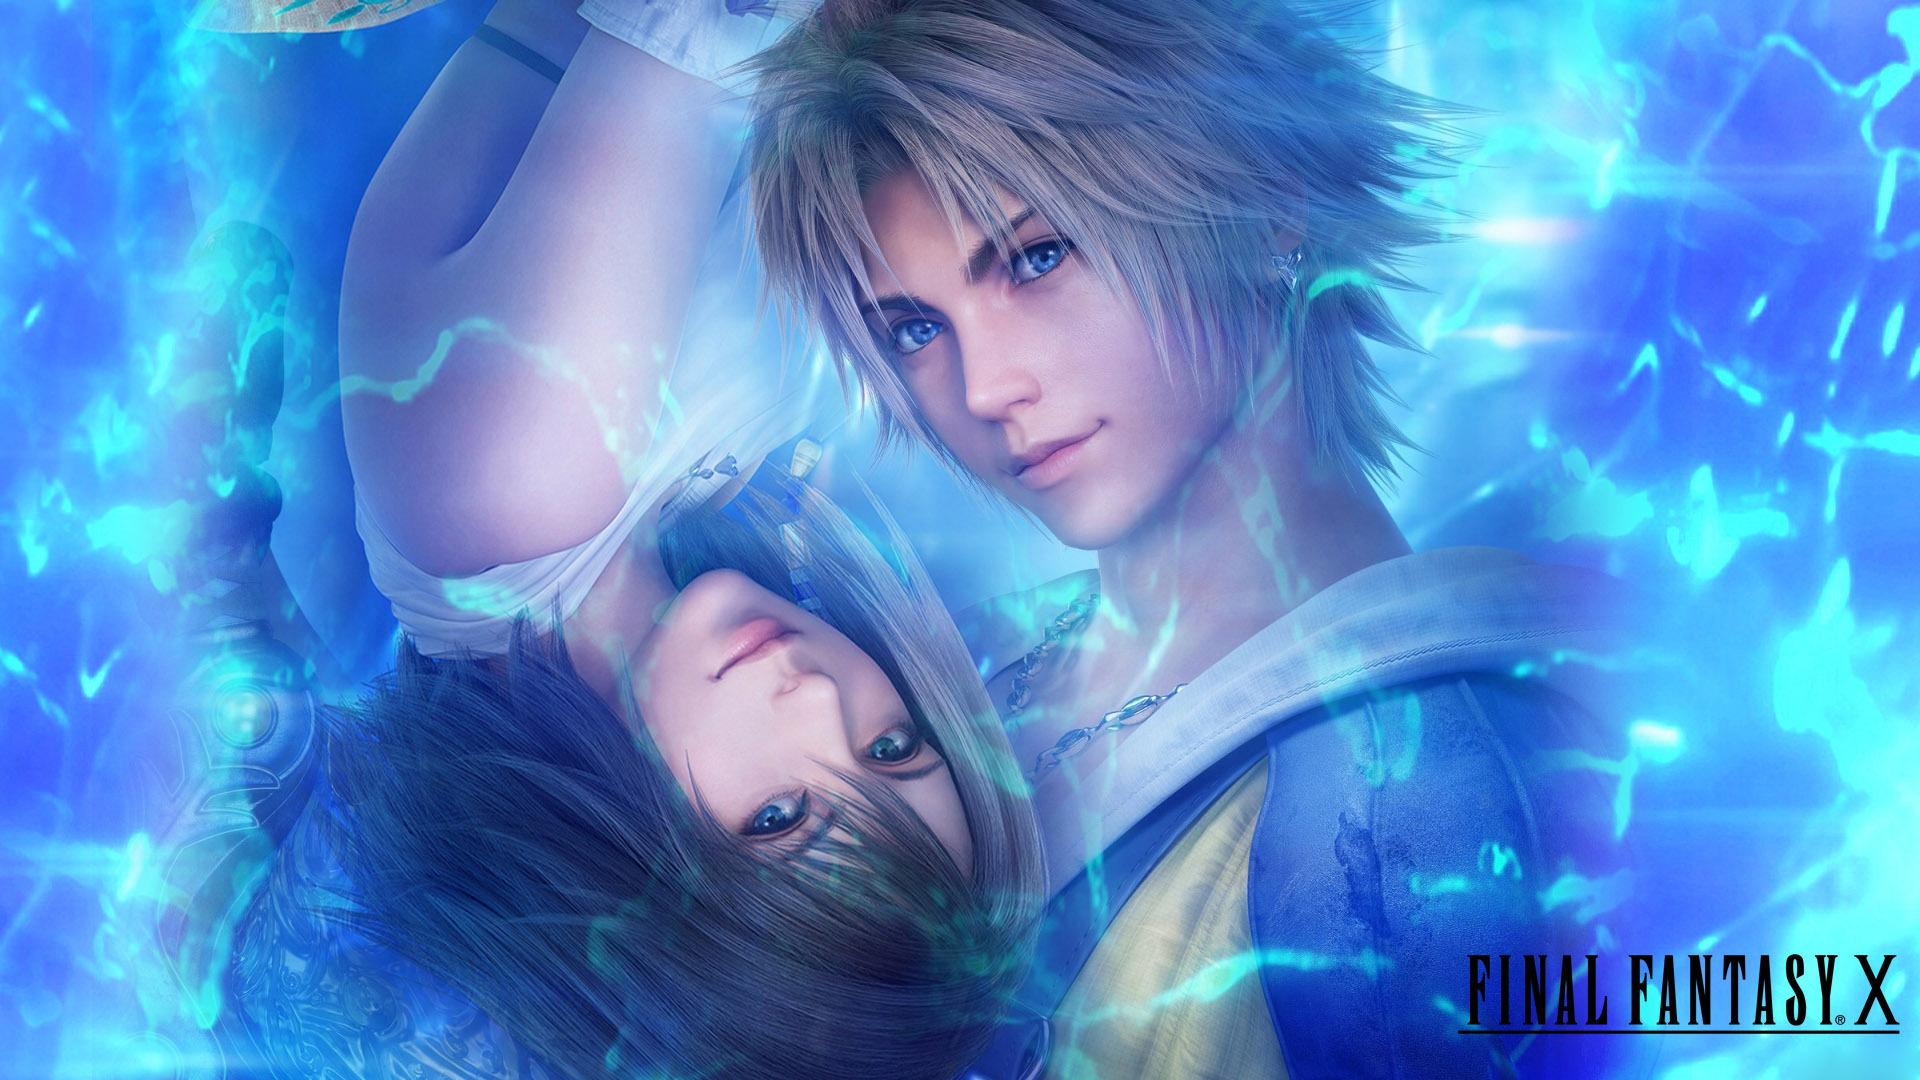 Final Fantasy X Wallpaper High Definition Epic